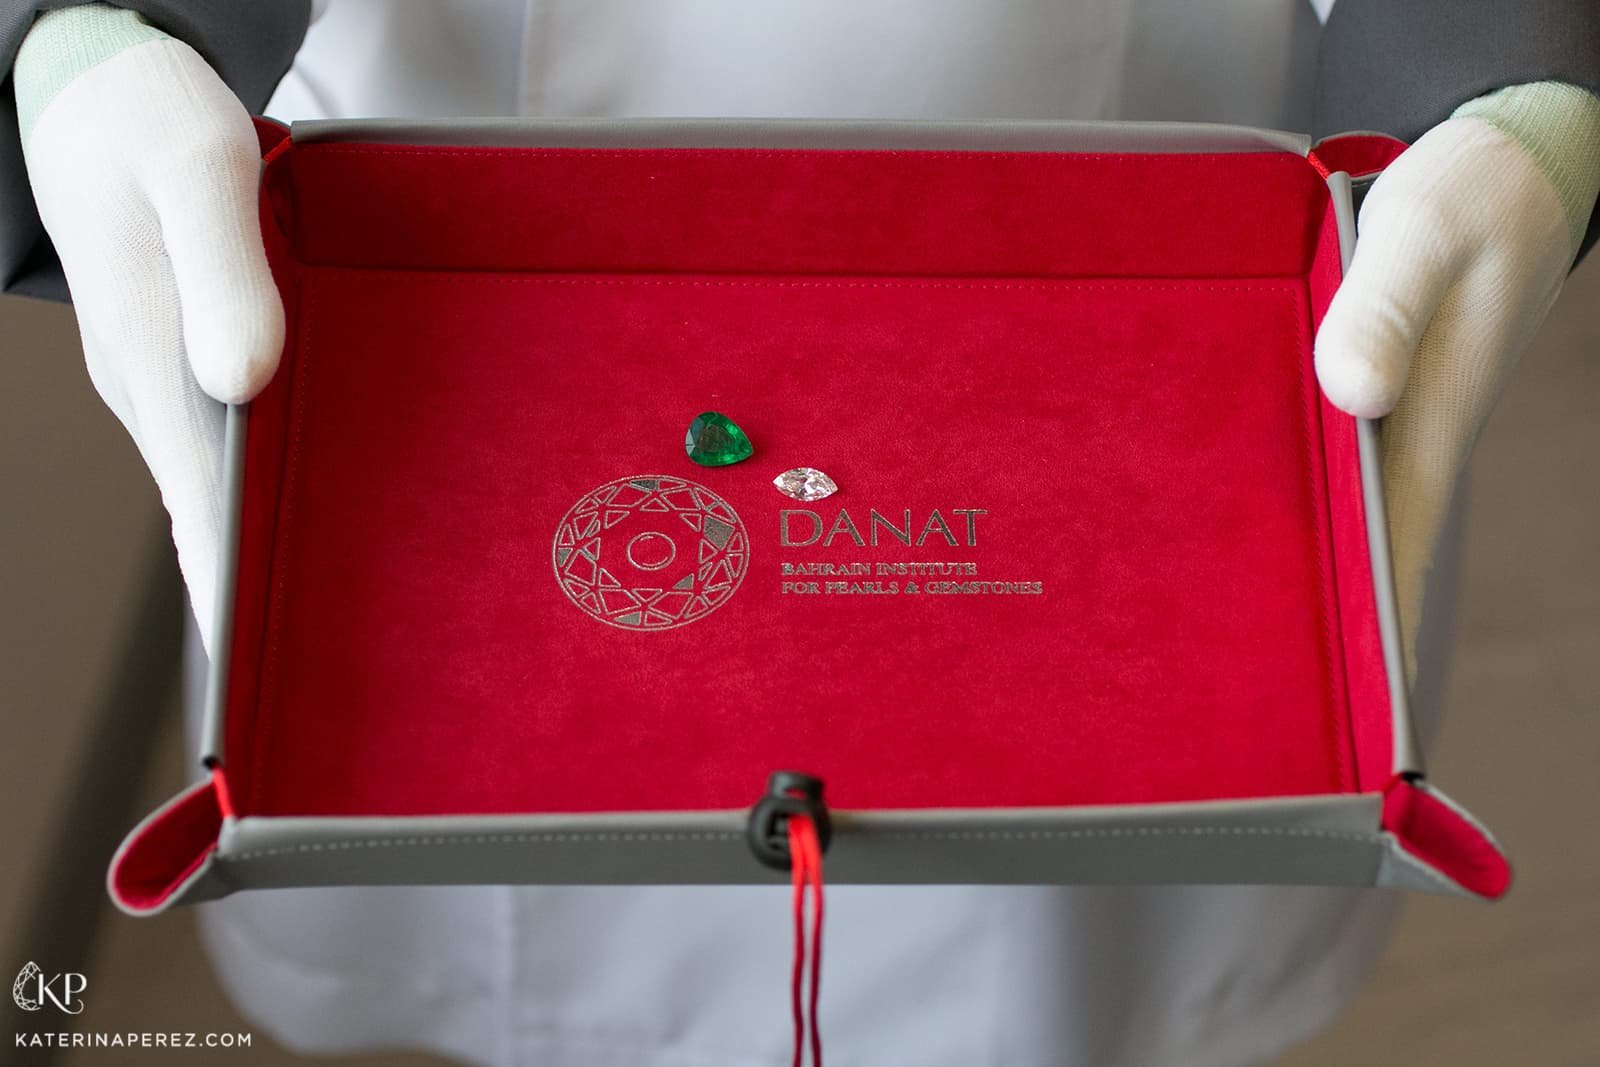 Diamond and emerald tested at DANAT Institute